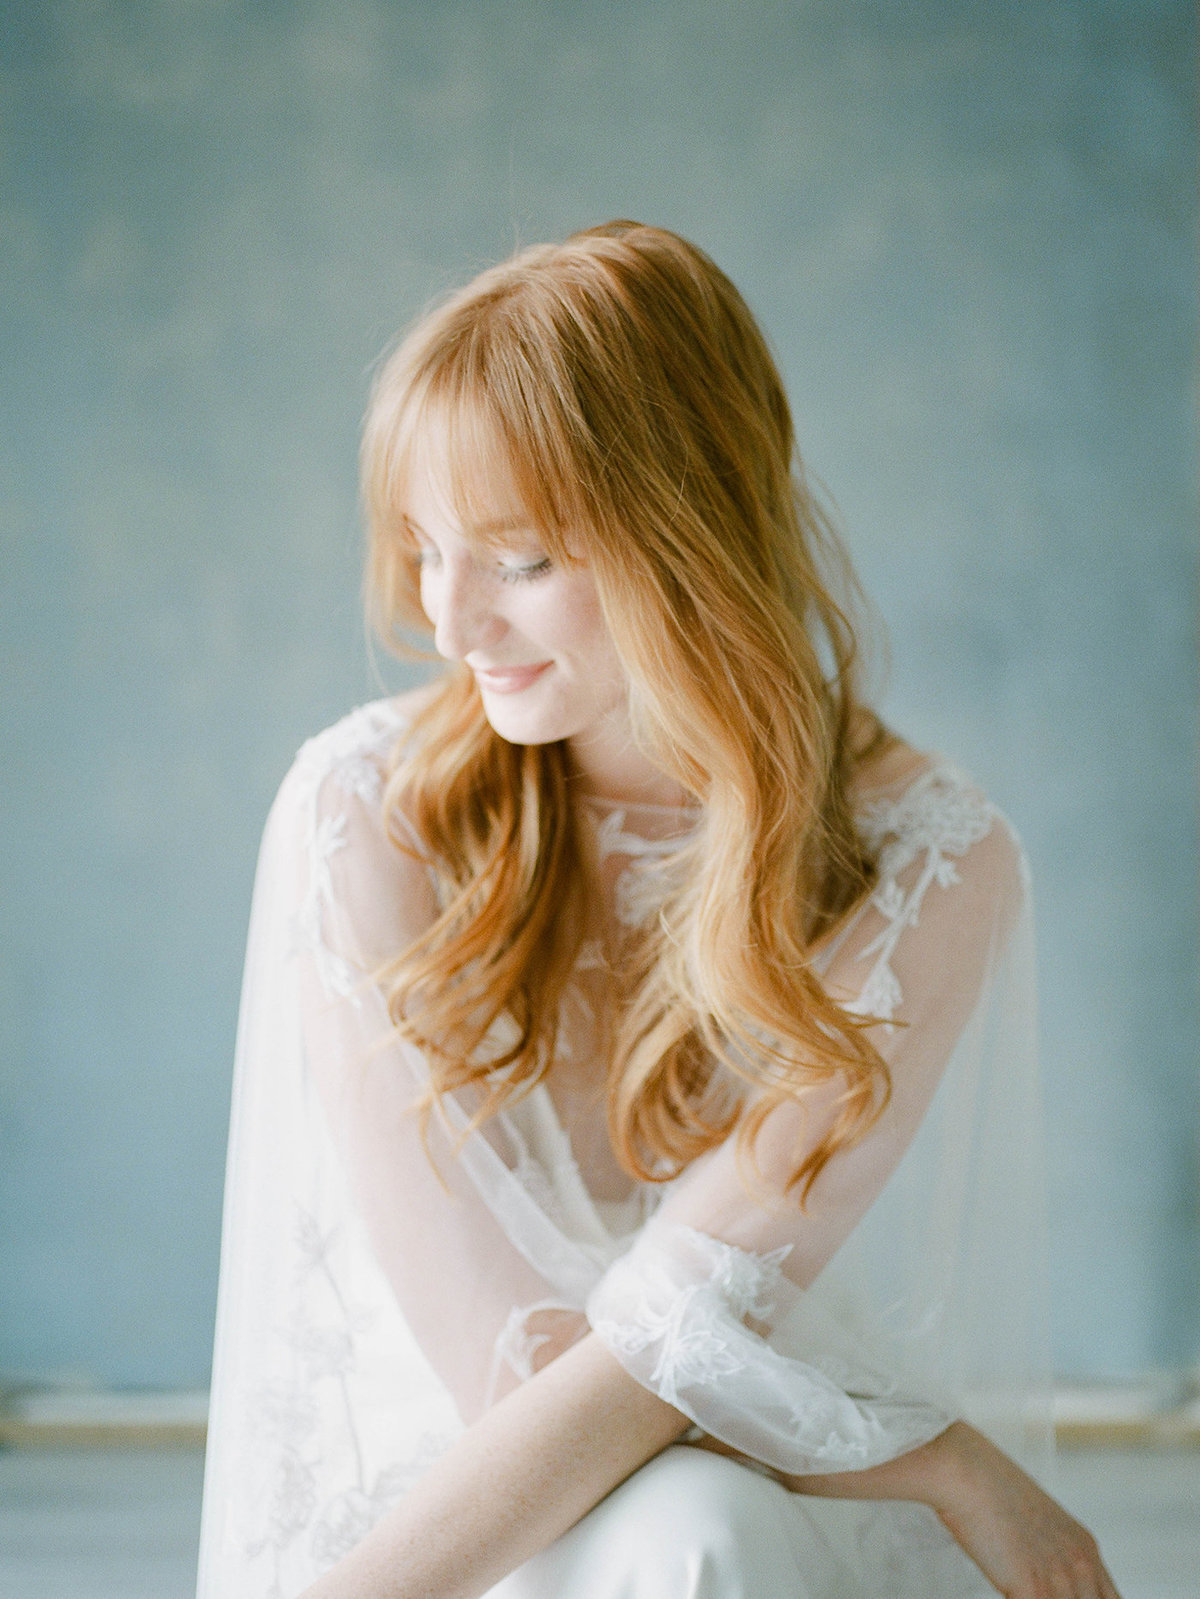 Fine Art Bridal Portraits - Sarah Sunstrom Photography - Film Wedding Photographer - 9